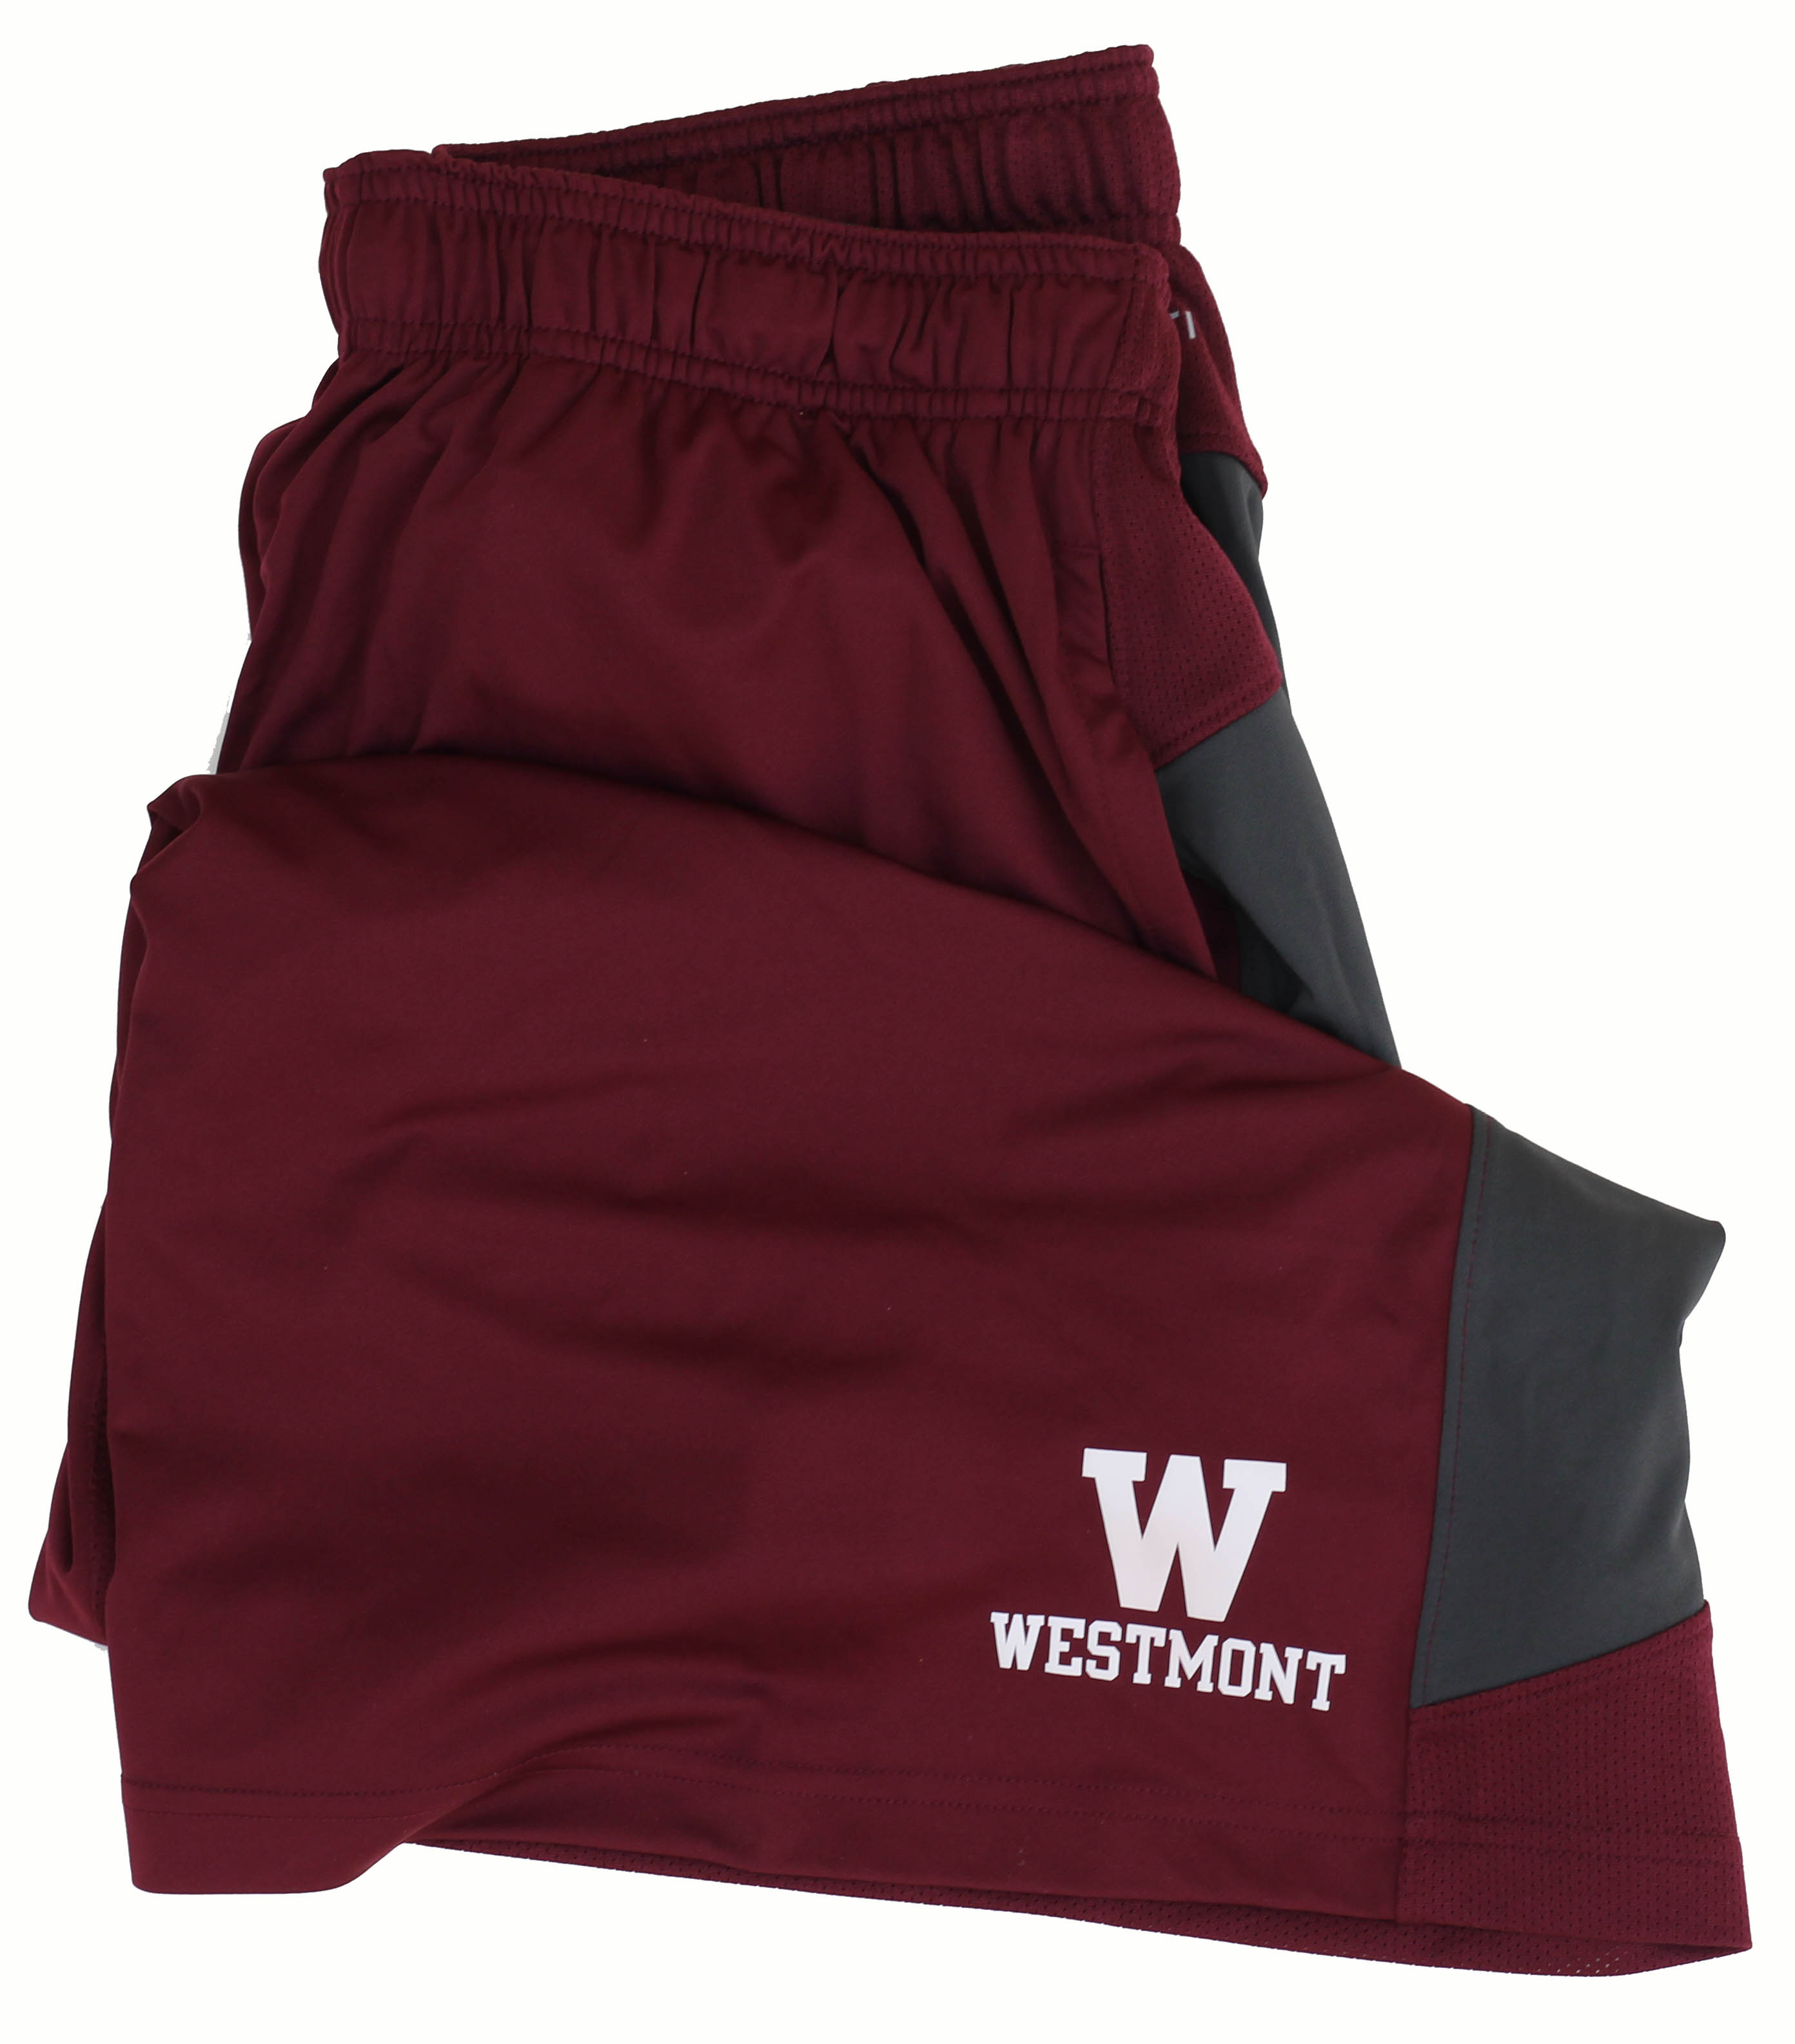 Image for the Nike Varsity Fly Short with W -Westmont product